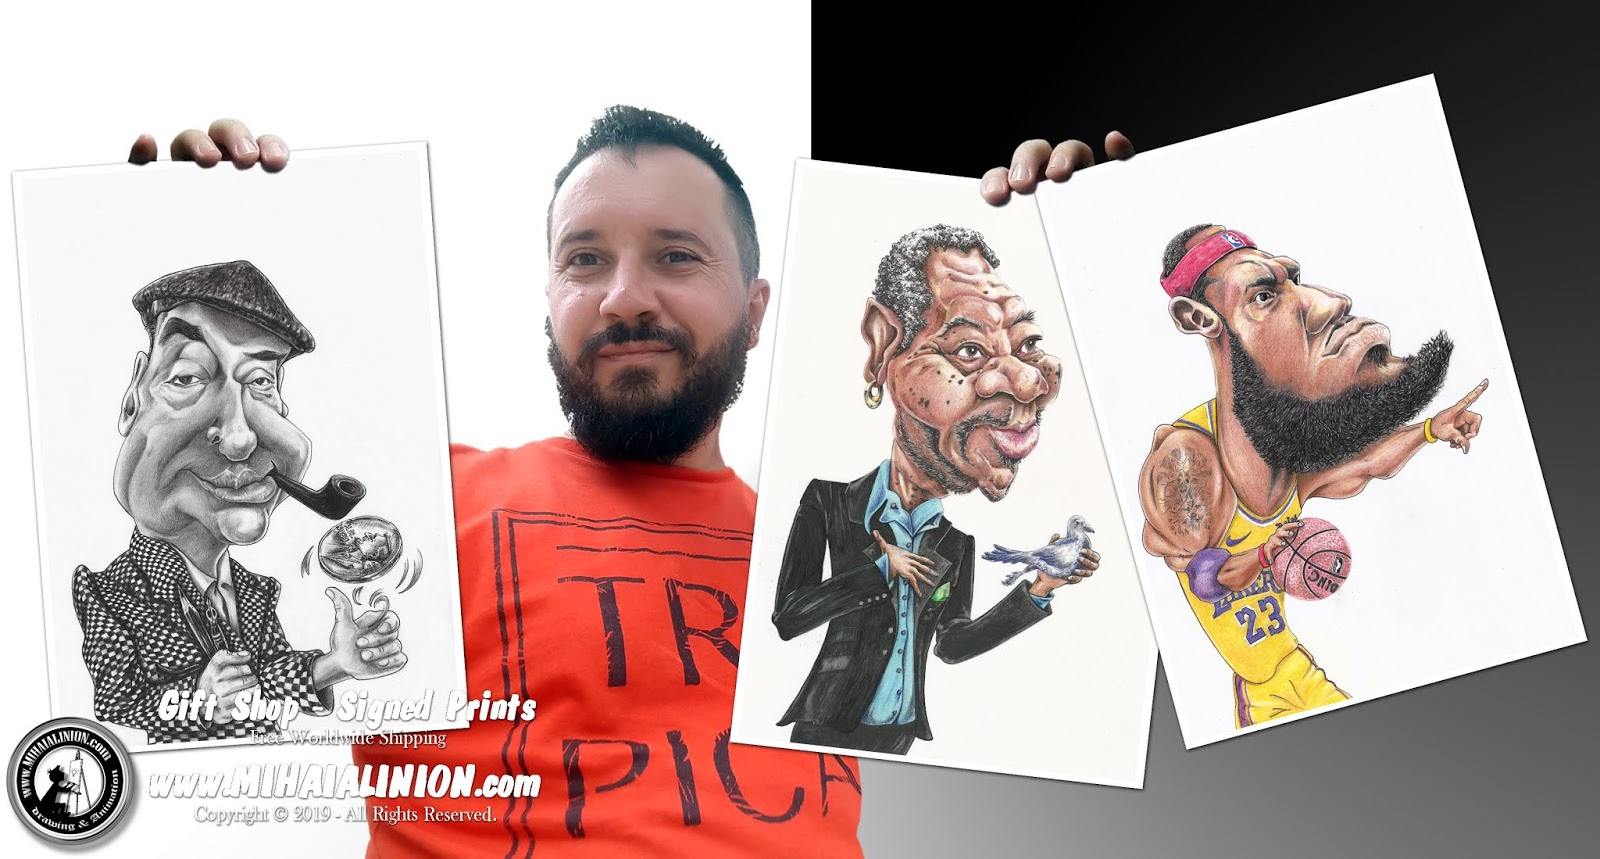 Drawing LeBron James, promarkers, caricature Illustration, drawing caricature, pencil drawing, how to draw caricature, art illustrated, mihai alin ion comics, matei alexandru ion, Drawing with Matei, Matei Draws, creioane colorate, NBA stars, lebron james basketball, sports caricature, lebron james caricature, illustrations by mihai alin ion, painting, MAI Comics, Mihai Alin Ion, art by mihai alin ion, how to draw, artselfie, drawing ideas, free drawing lessons, drawing tutorial, art, dessin, disegno, dibujo, drawing for kids, drawing, illustration, painting, design, realistic 3d art, coloured pencils, www.mihaialinion.com, 2019, pencil drawing, tempera, acrilics paint, marker, gouache painting, mixed media, comics, comic book, caricature, portrait, cum sa desenezi, caricaturi mihai alin ion, caricaturi si portrete  la comanda, eveniment caricaturi, caricaturi la nunta, caricaturi la botez, caricaturi la majorat, desene pe pereti, desene pentru copii, ilustratie carte, benzi desenate, caricaturi, portrete, comanda caricaturi